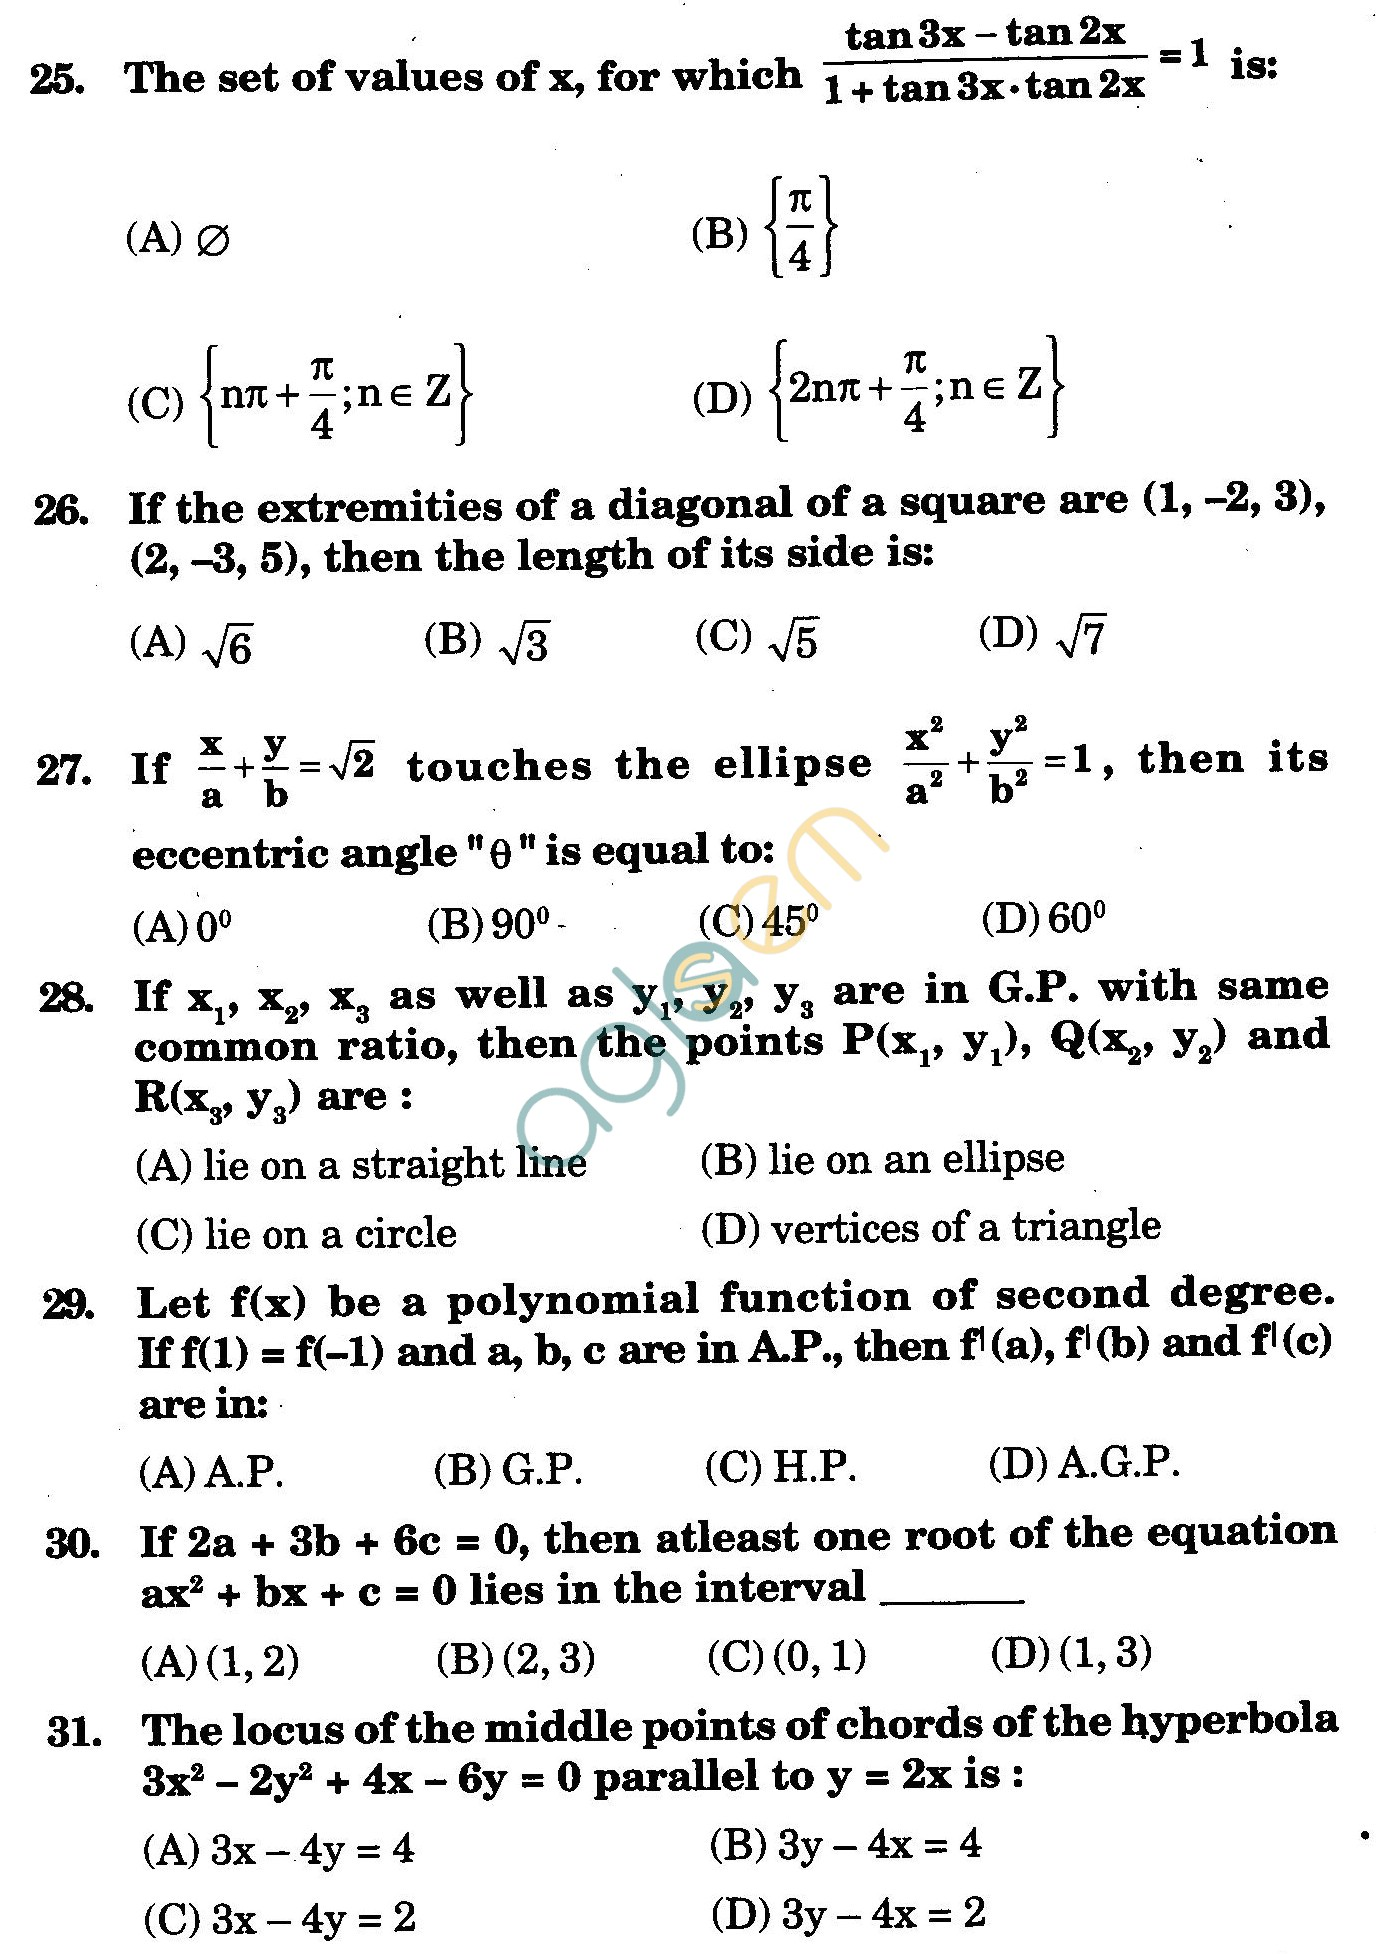 NSTSE 2009 Class XI PCM Question Paper with Answers - Mathematics